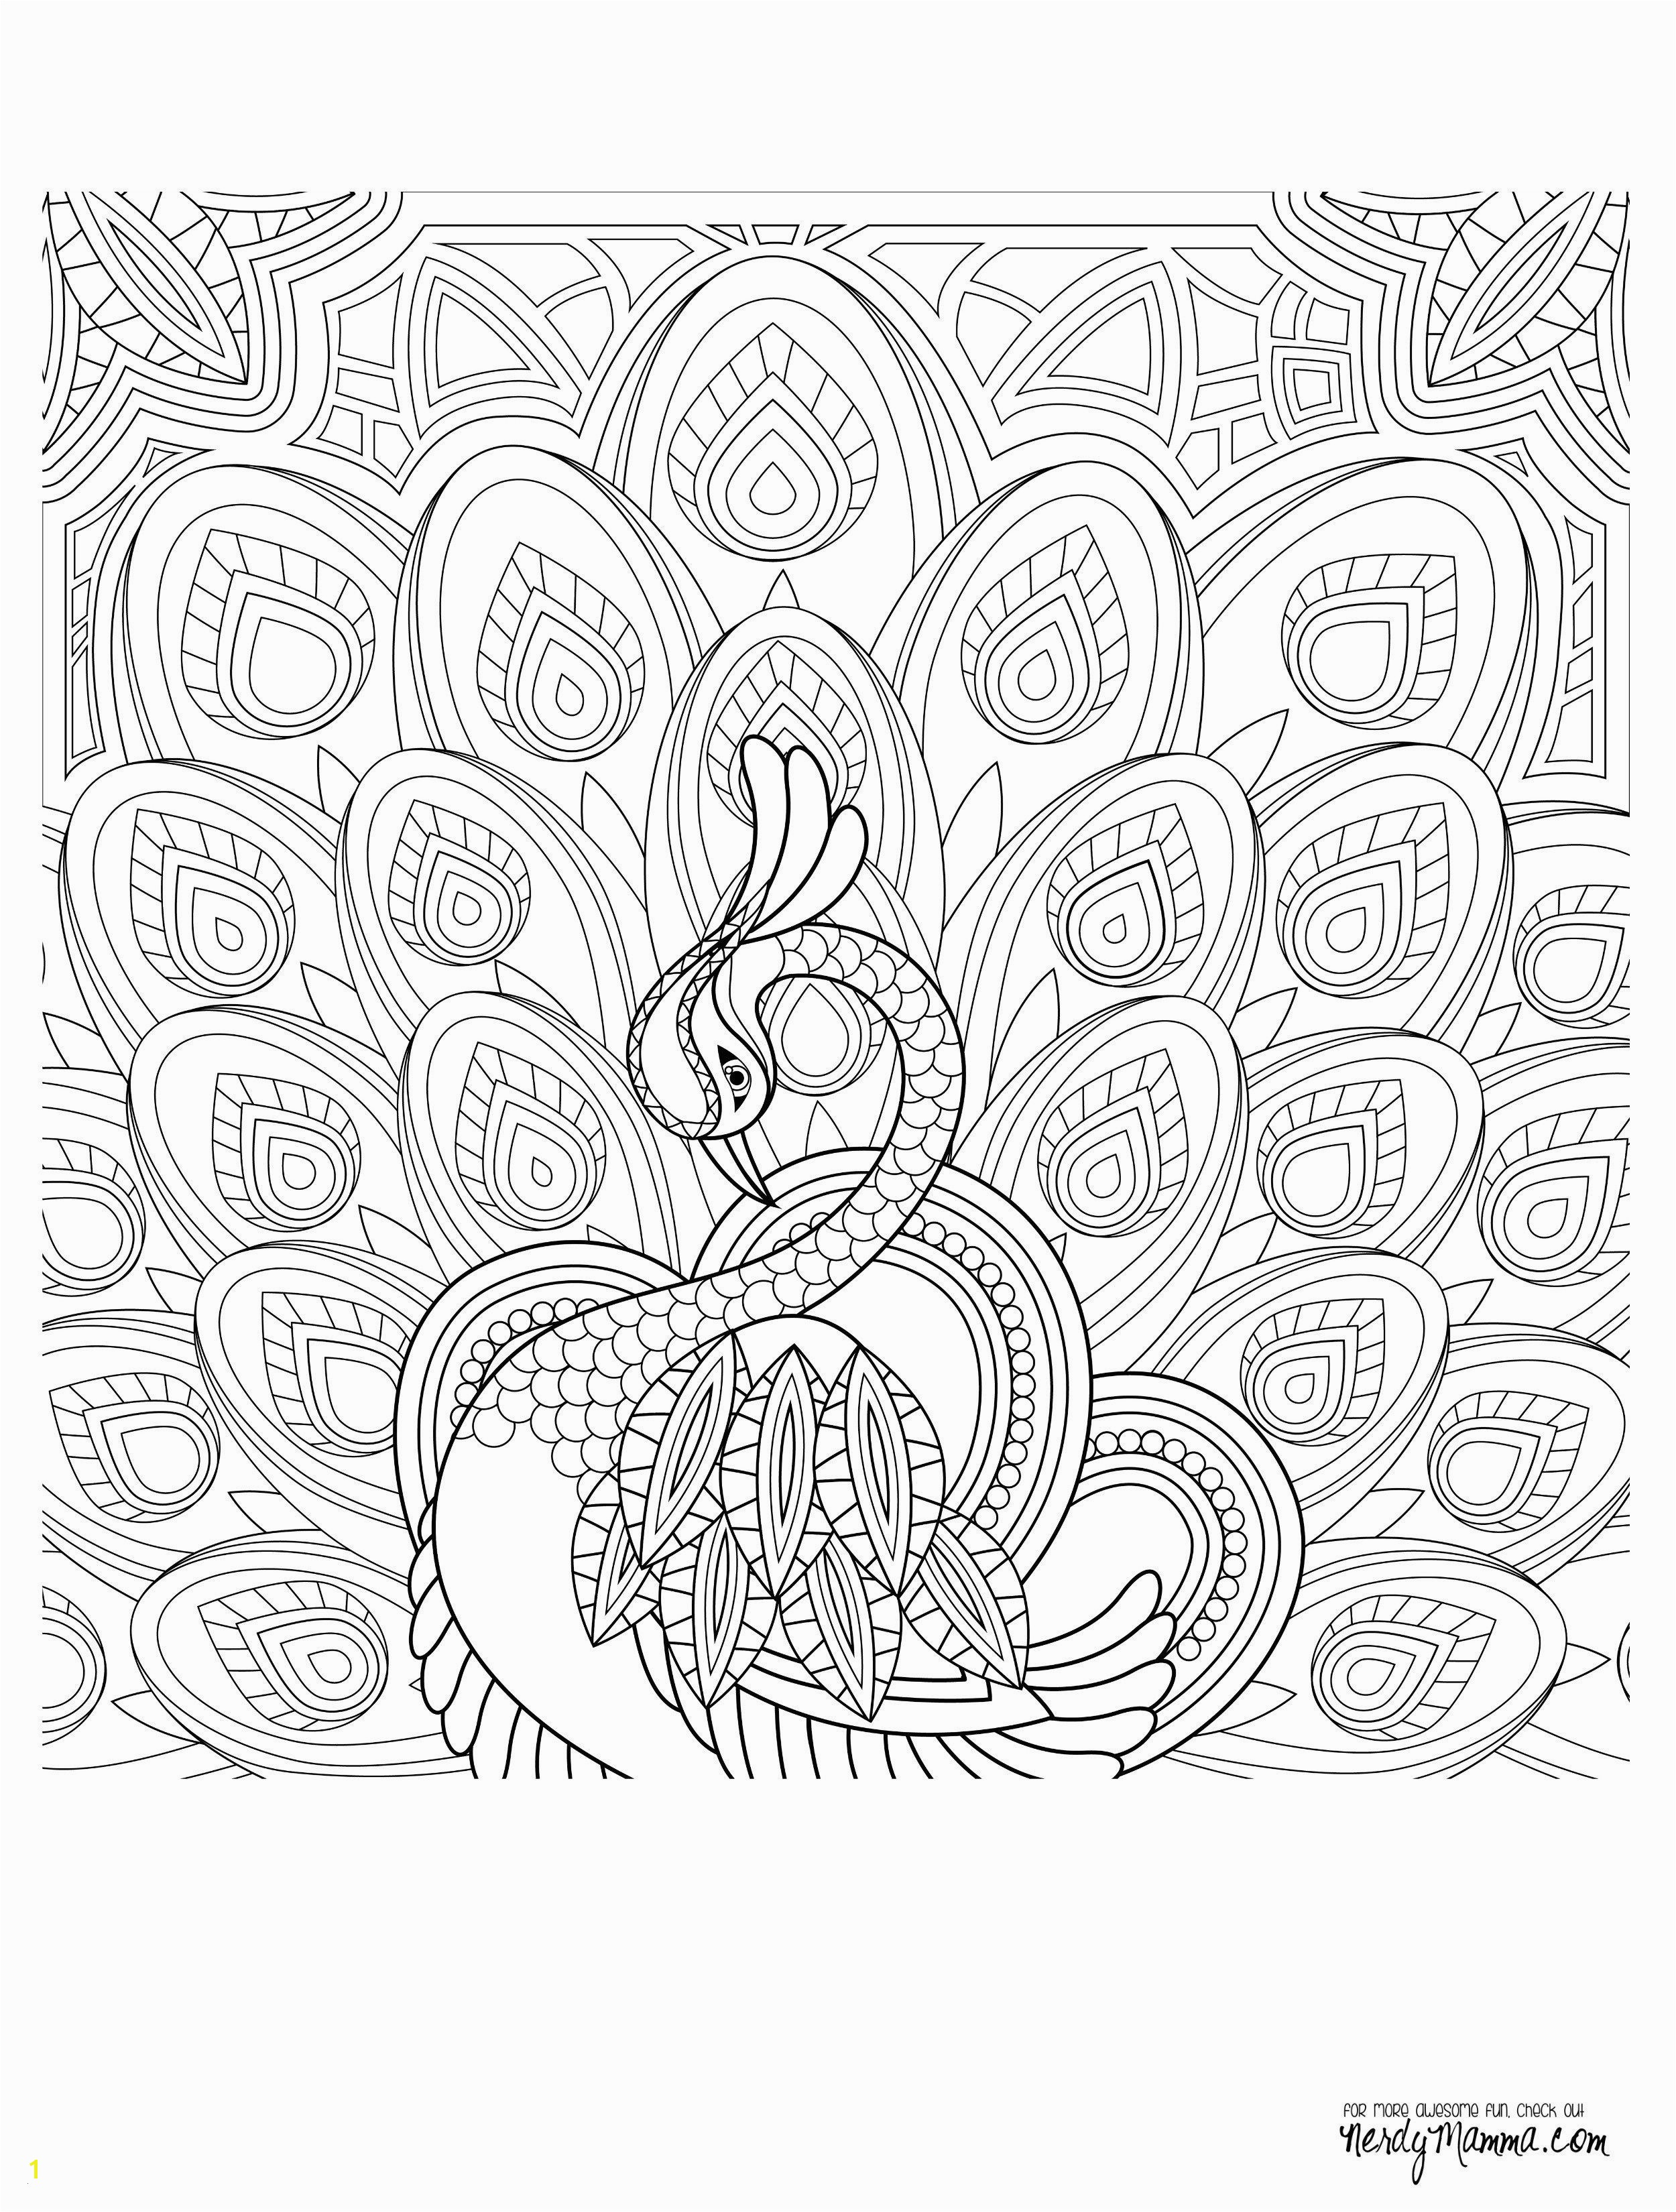 Coloring Pages Boys Coloring Pages for Kids New Coloring Printables 0d – Fun Time